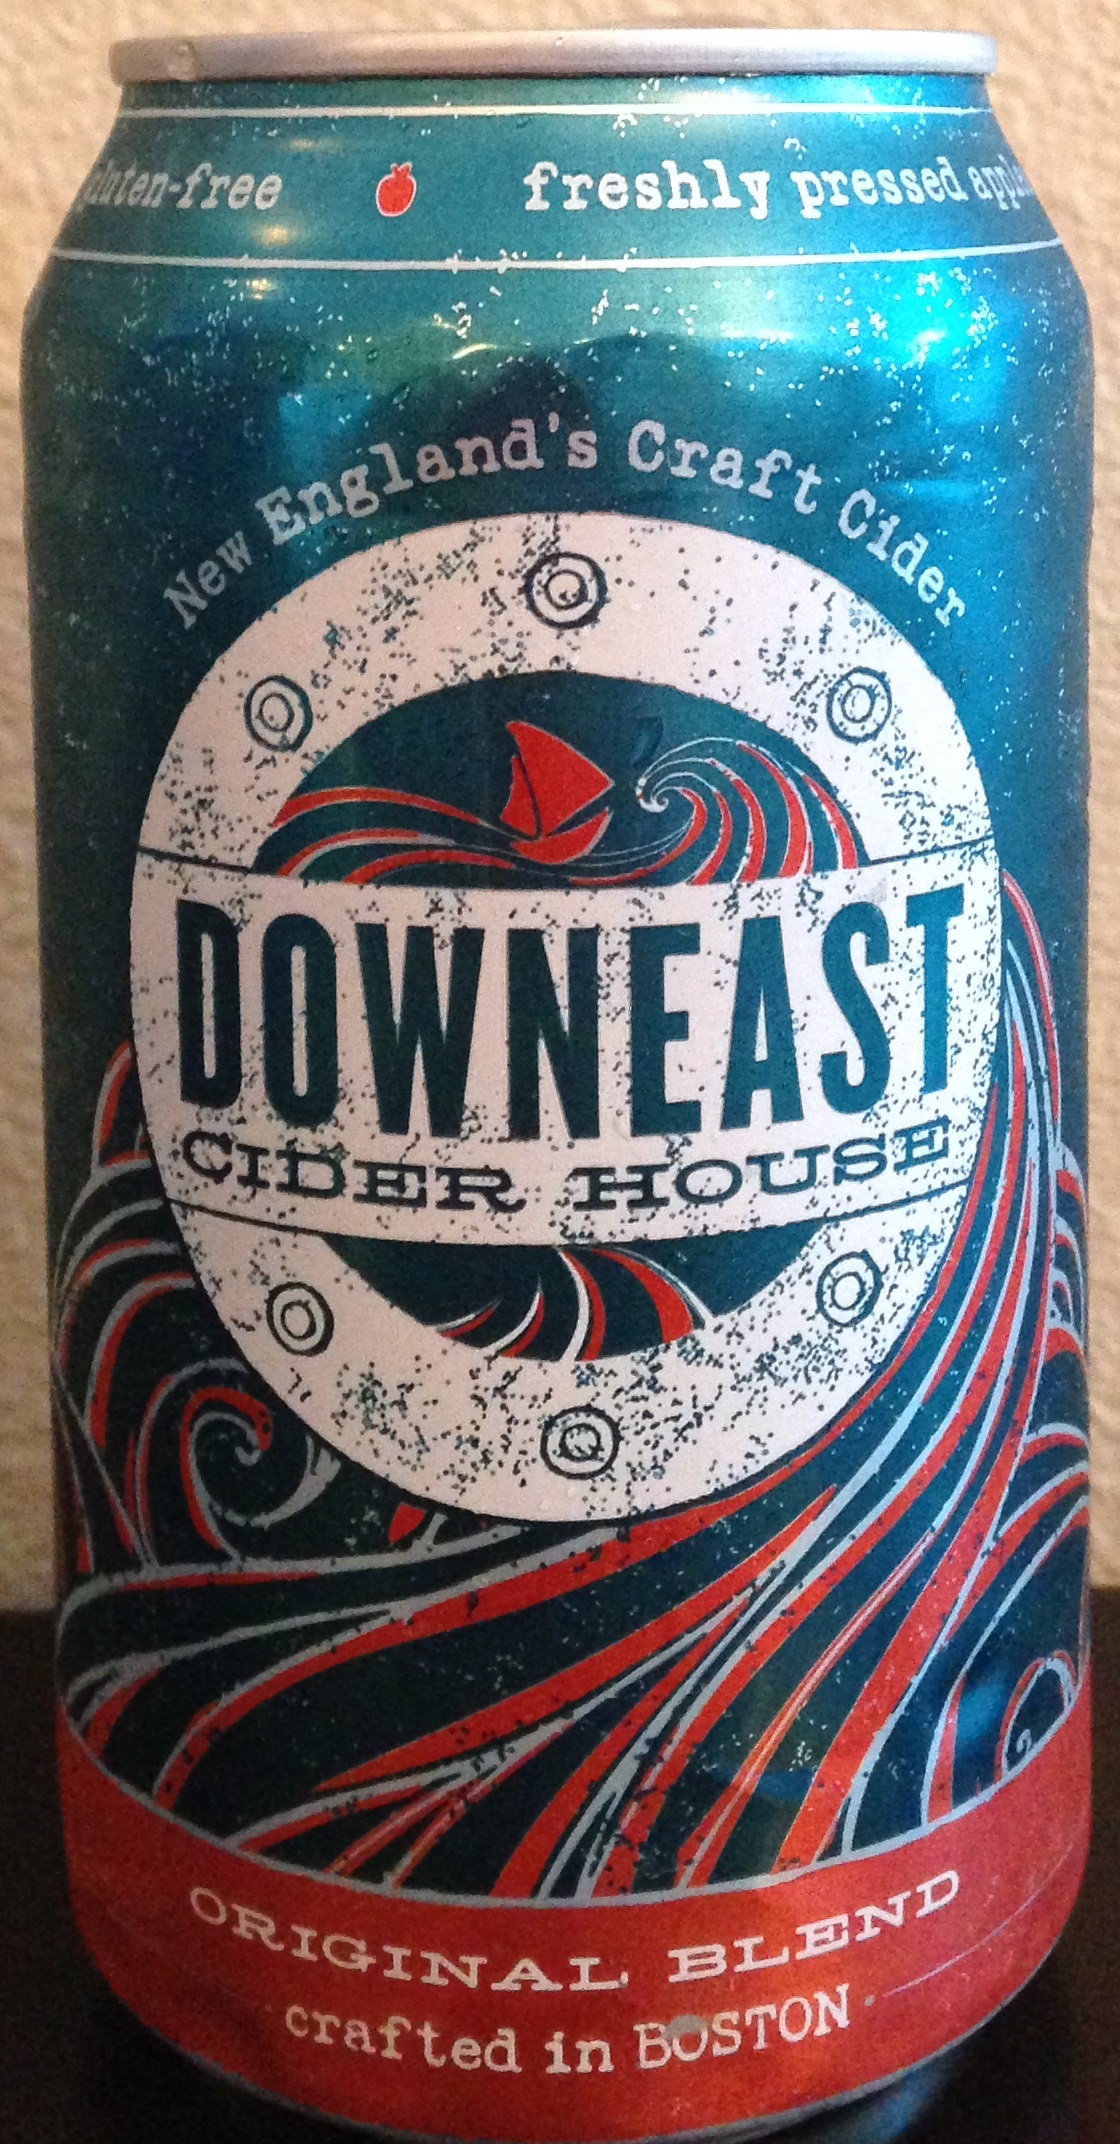 Downeast Cider House Original Blend Cider Says